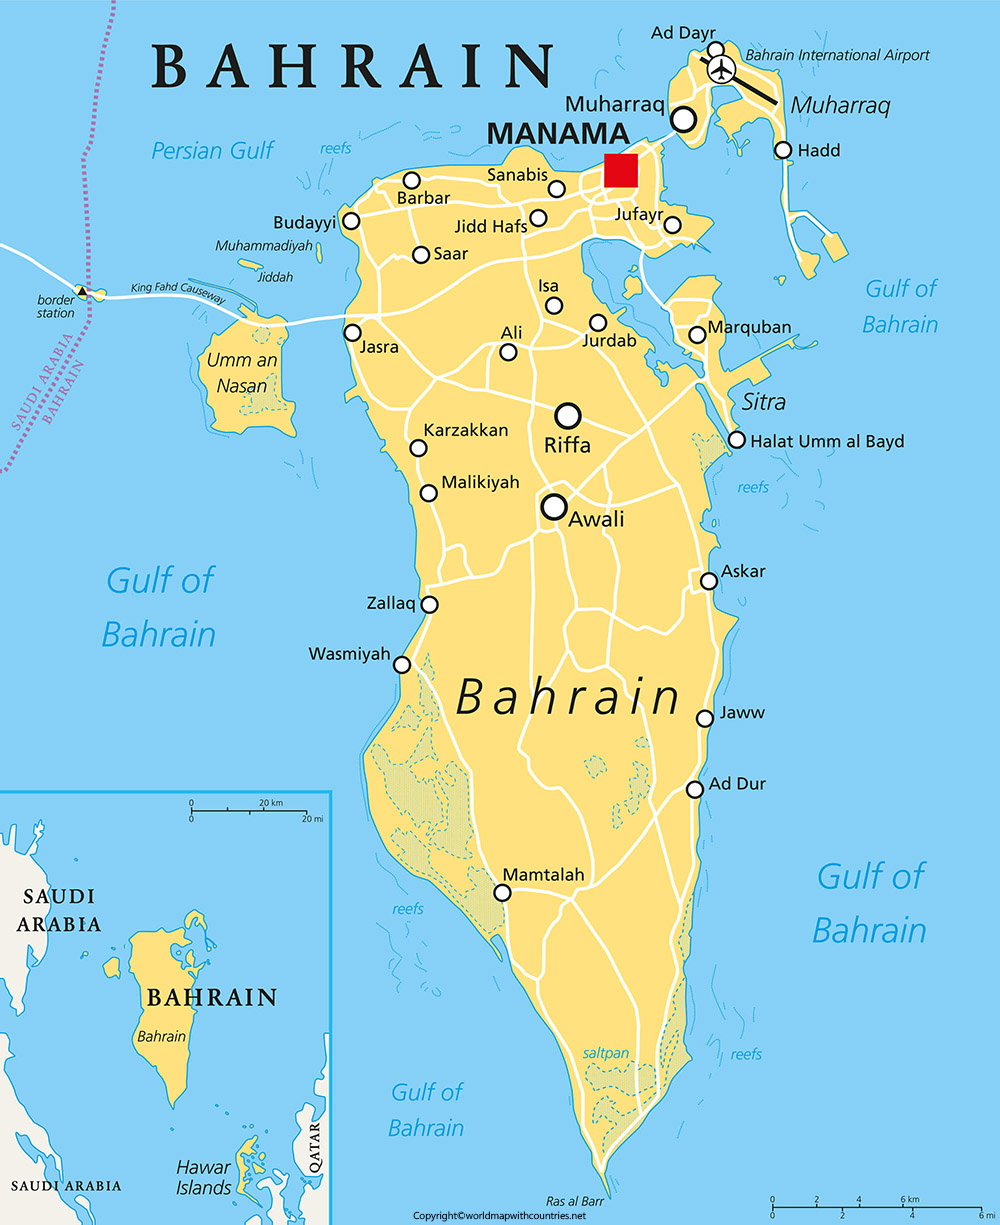 Labeled Map of Bahrain